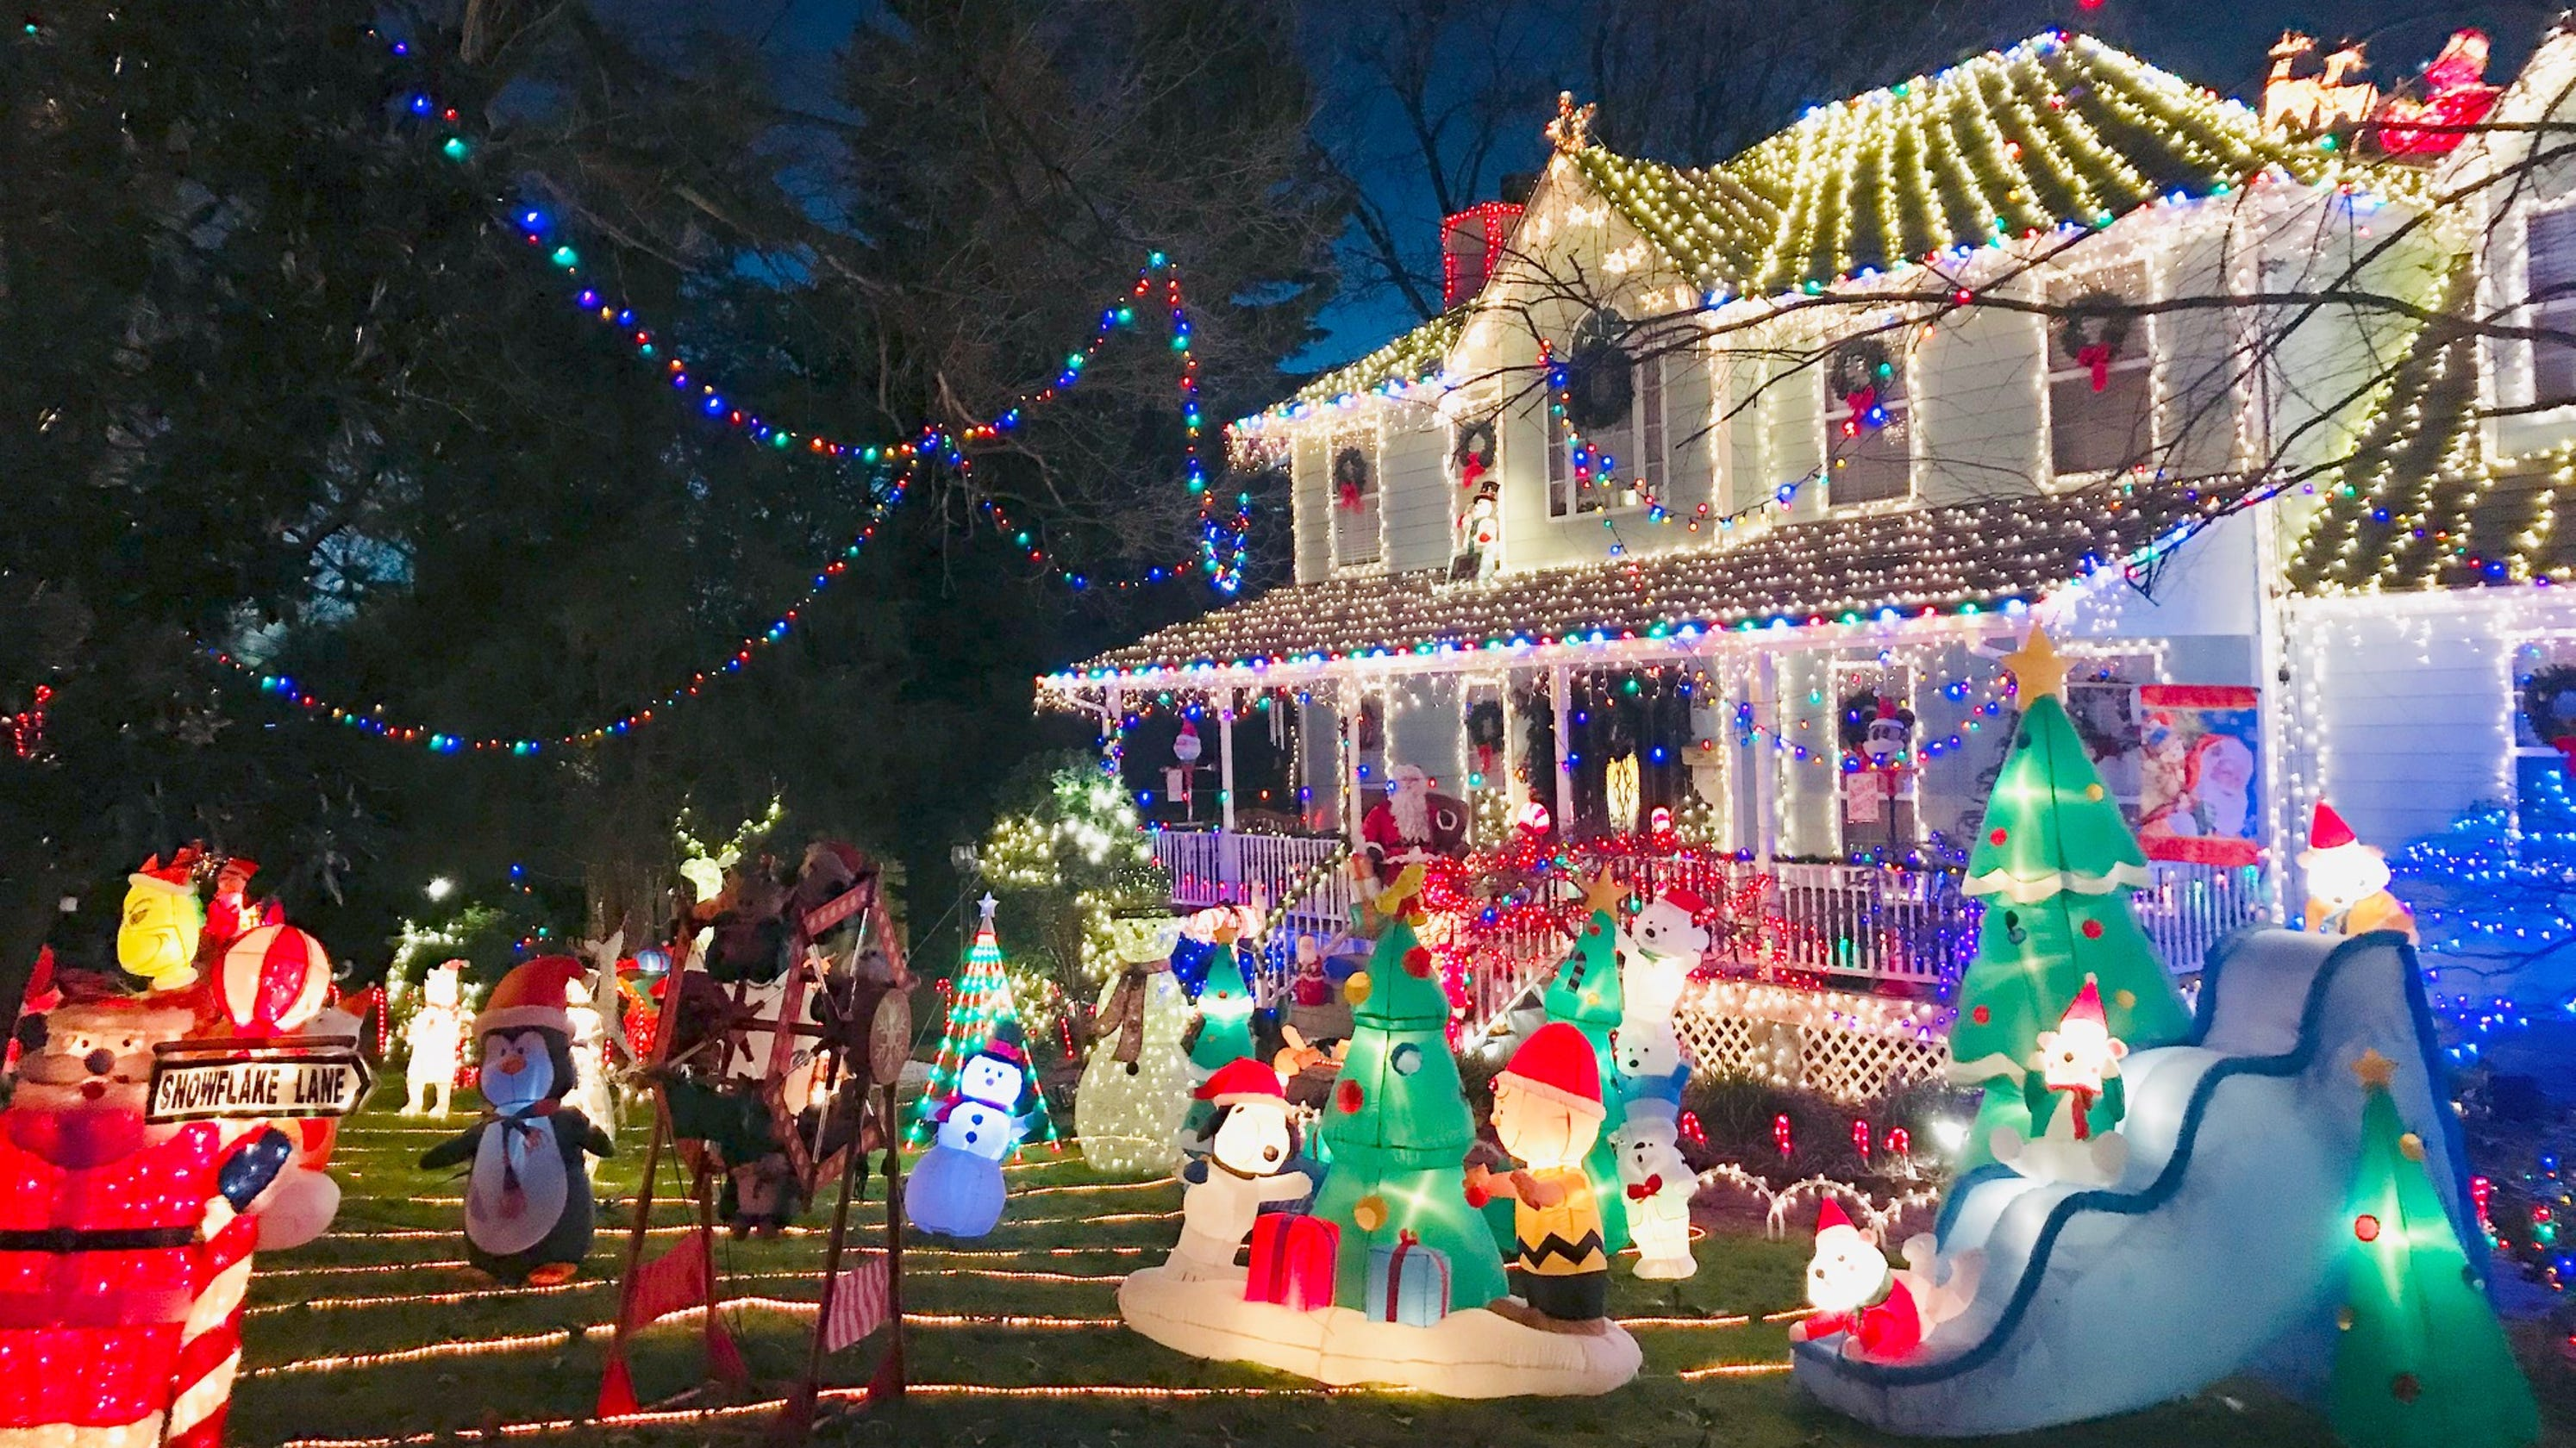 Christmas In Tennessee.Christmas 2018 21 East Tennessee Homes With Outdoor Holiday